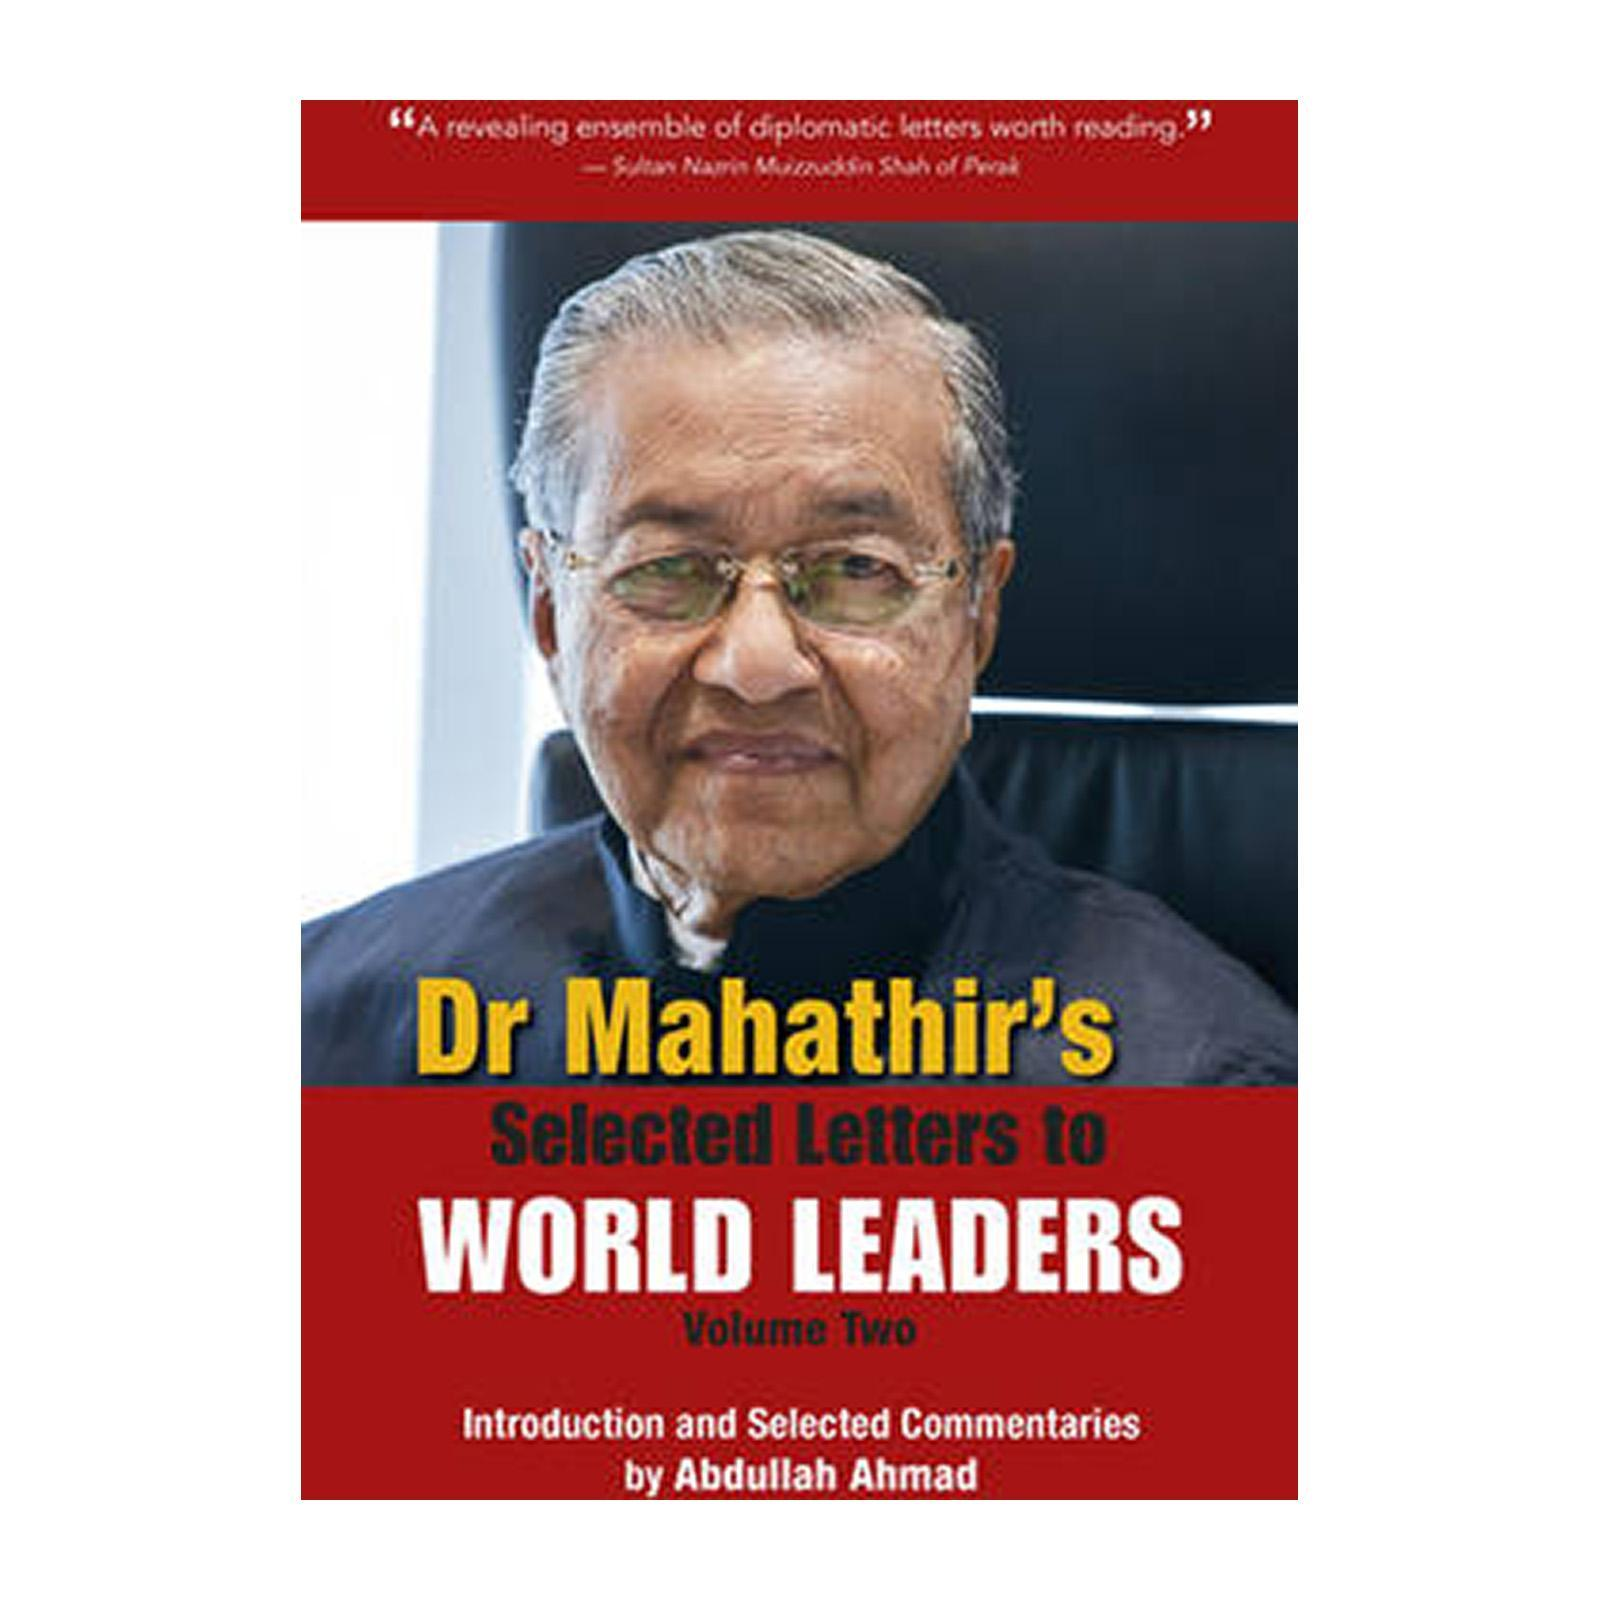 Dr. Mahathirs Selected Letters To World Leaders: Volume 2 (Paperback)